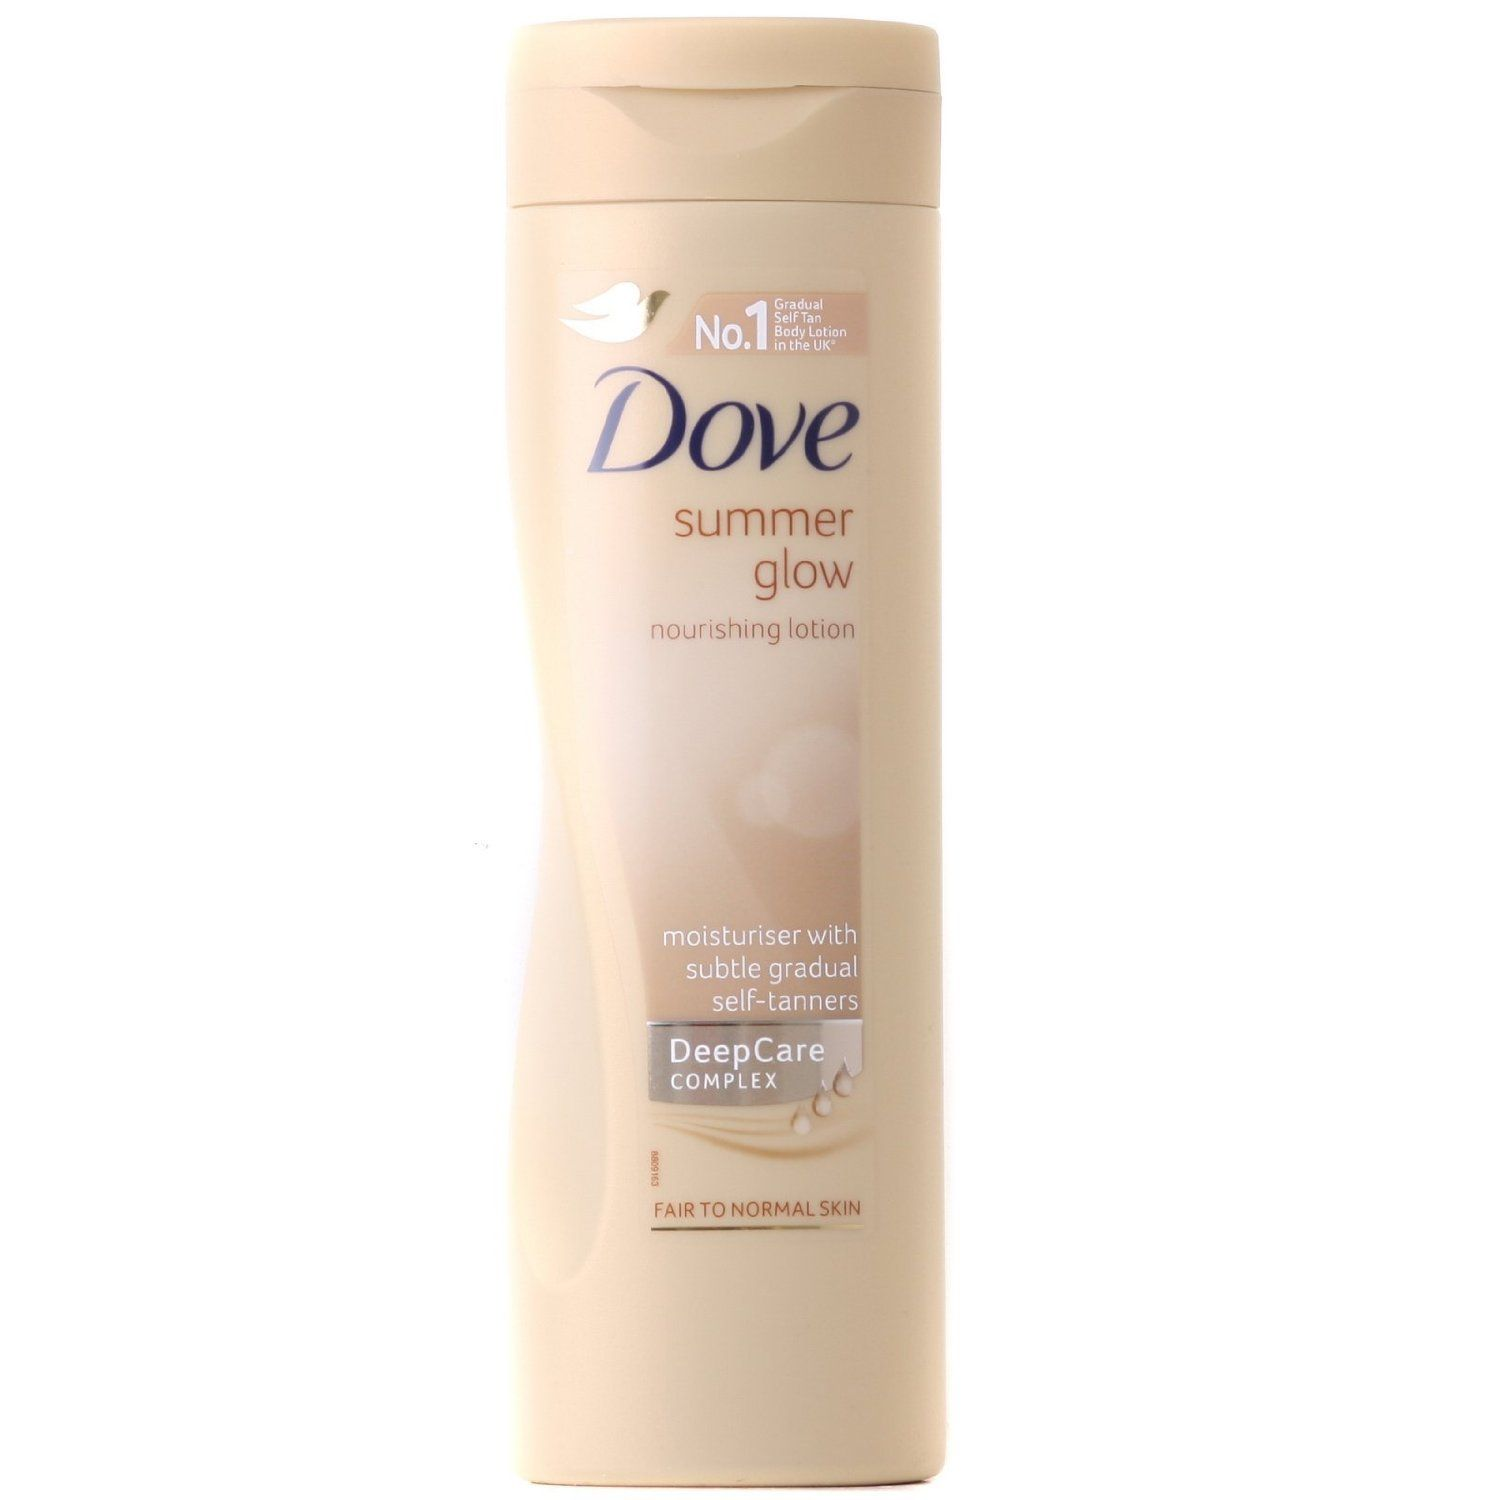 Dove Dove Tinted Moisterizer Fair To Medium Reviews Photo